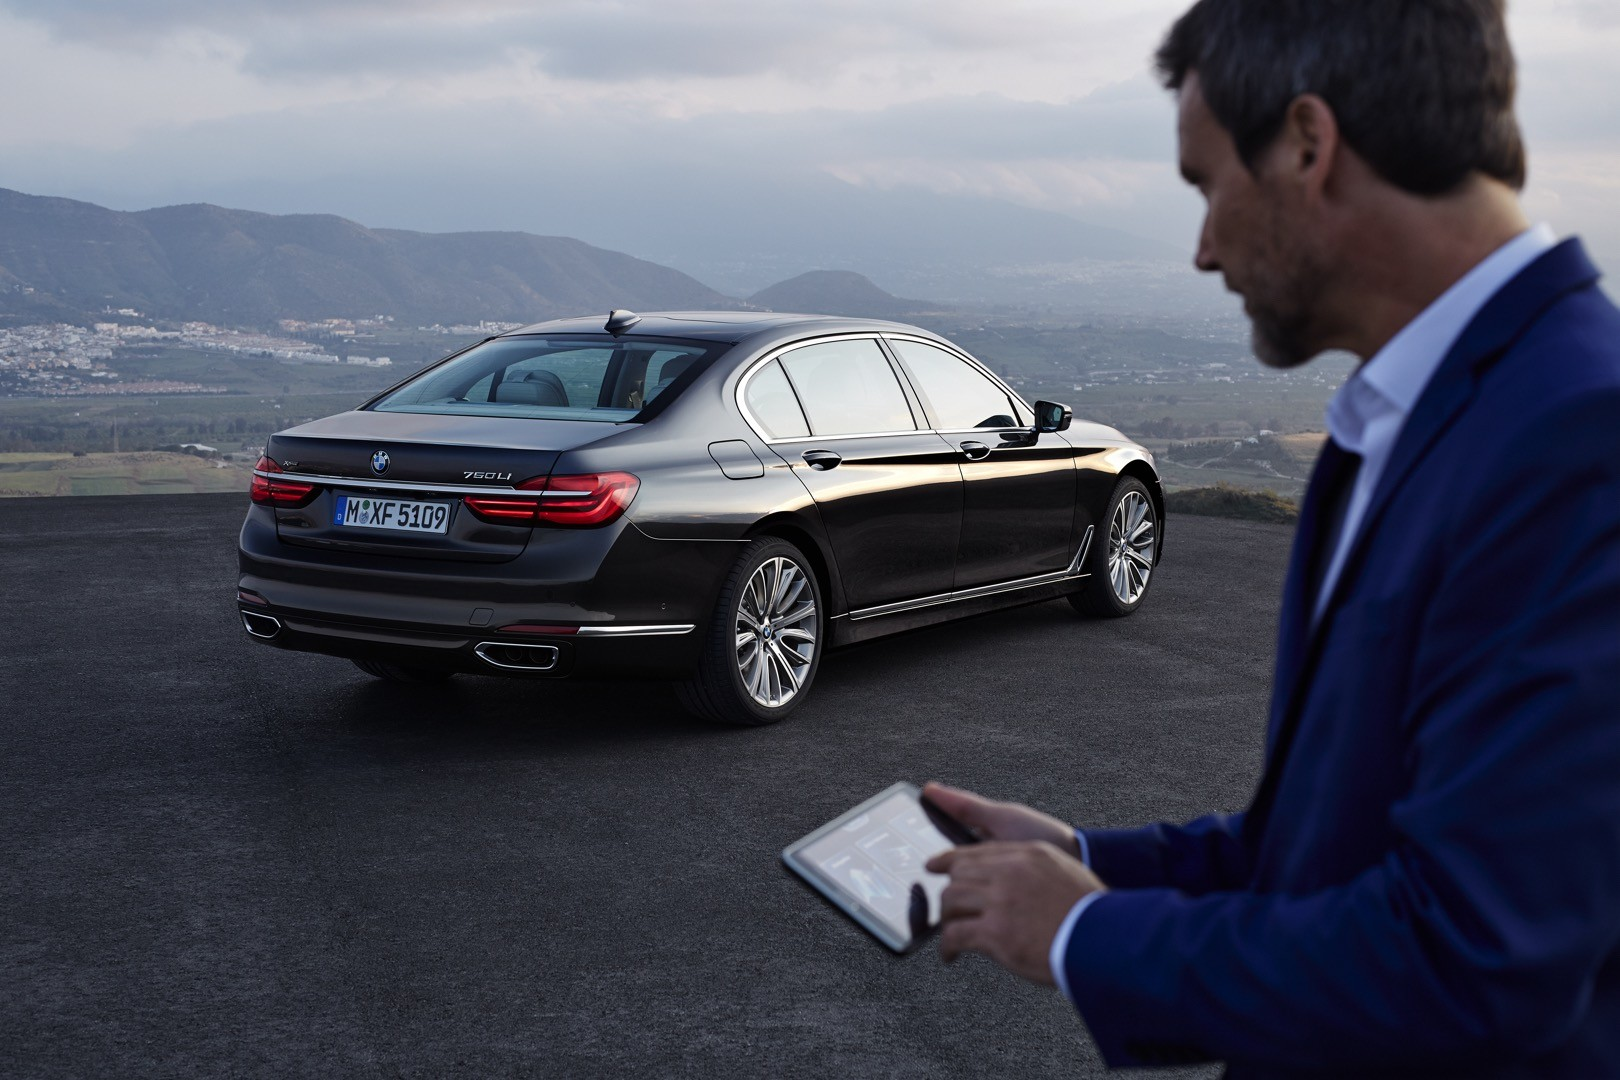 2016-bmw-7-series-finally-officially-unveiled-the-good-stuffs-inside-photo-gallery_18